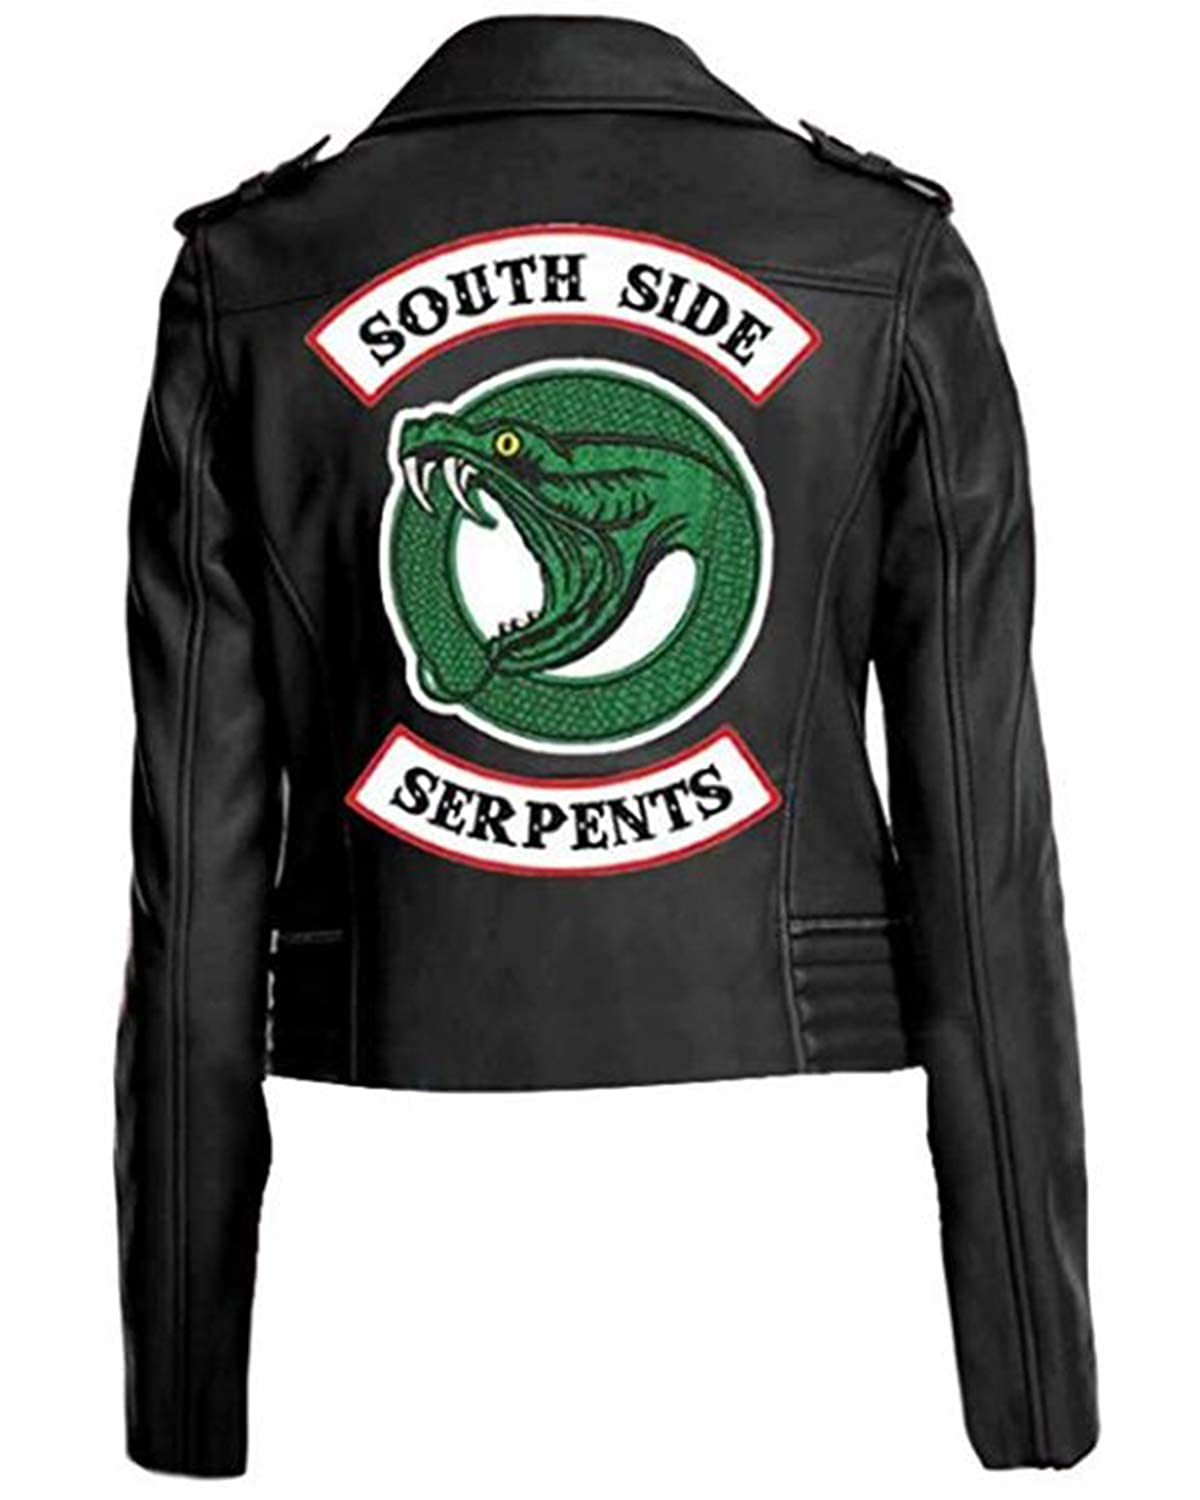 XXS-5XL Riverdale Giacca Shop House Riverdale Southside Serpents Cheryl Blossom Giacca per Donna in Ecopelle Southside Serpents Giacca